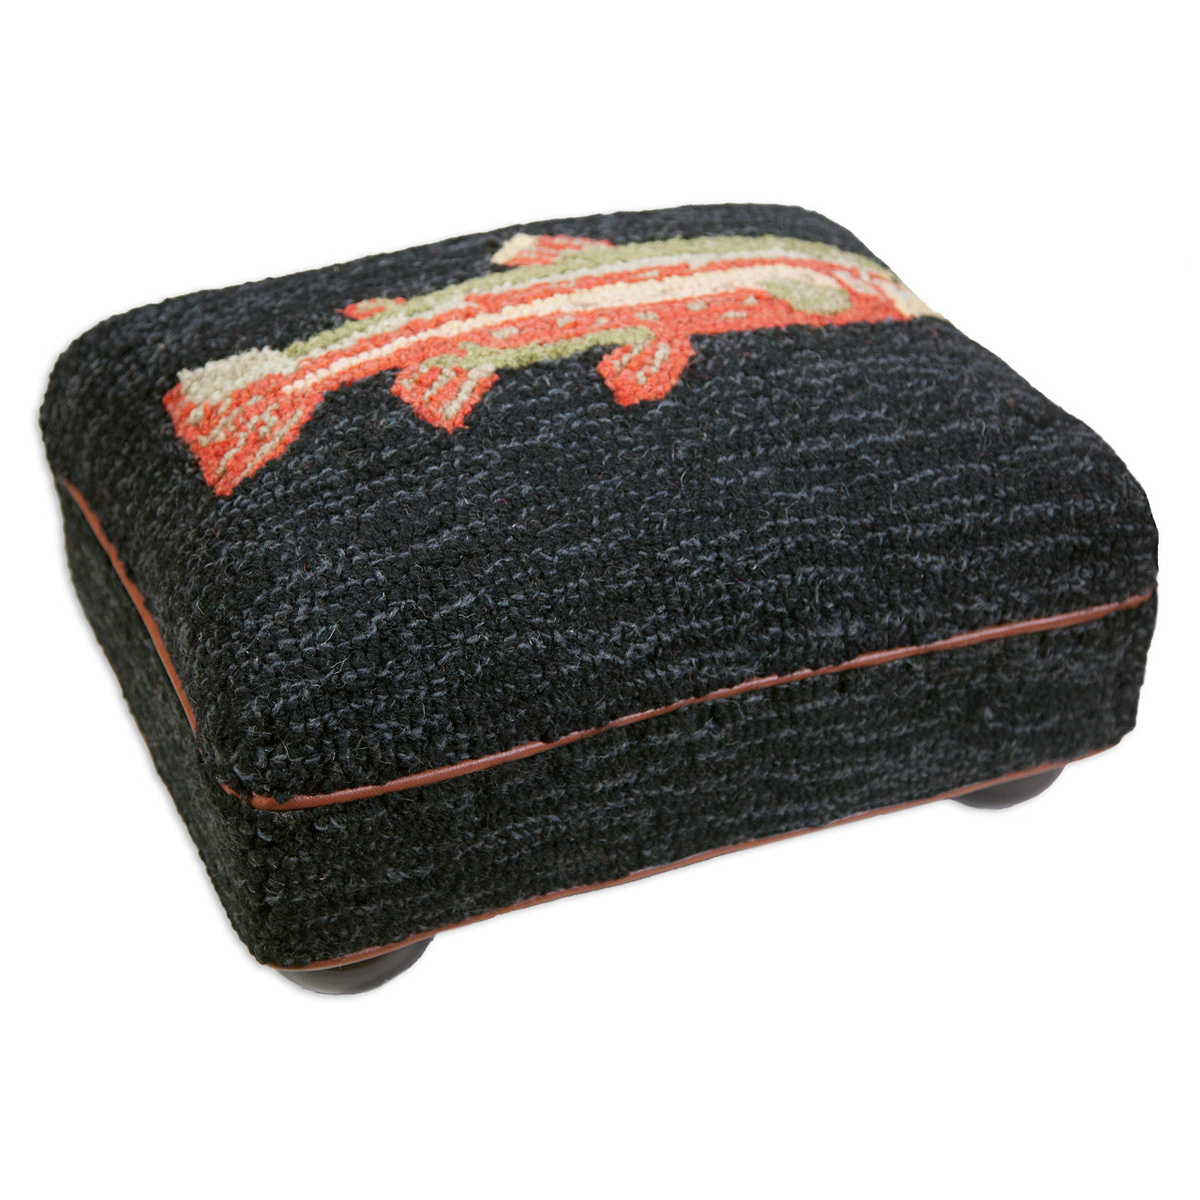 Black Forest Decor Riverfish hooked top footstool